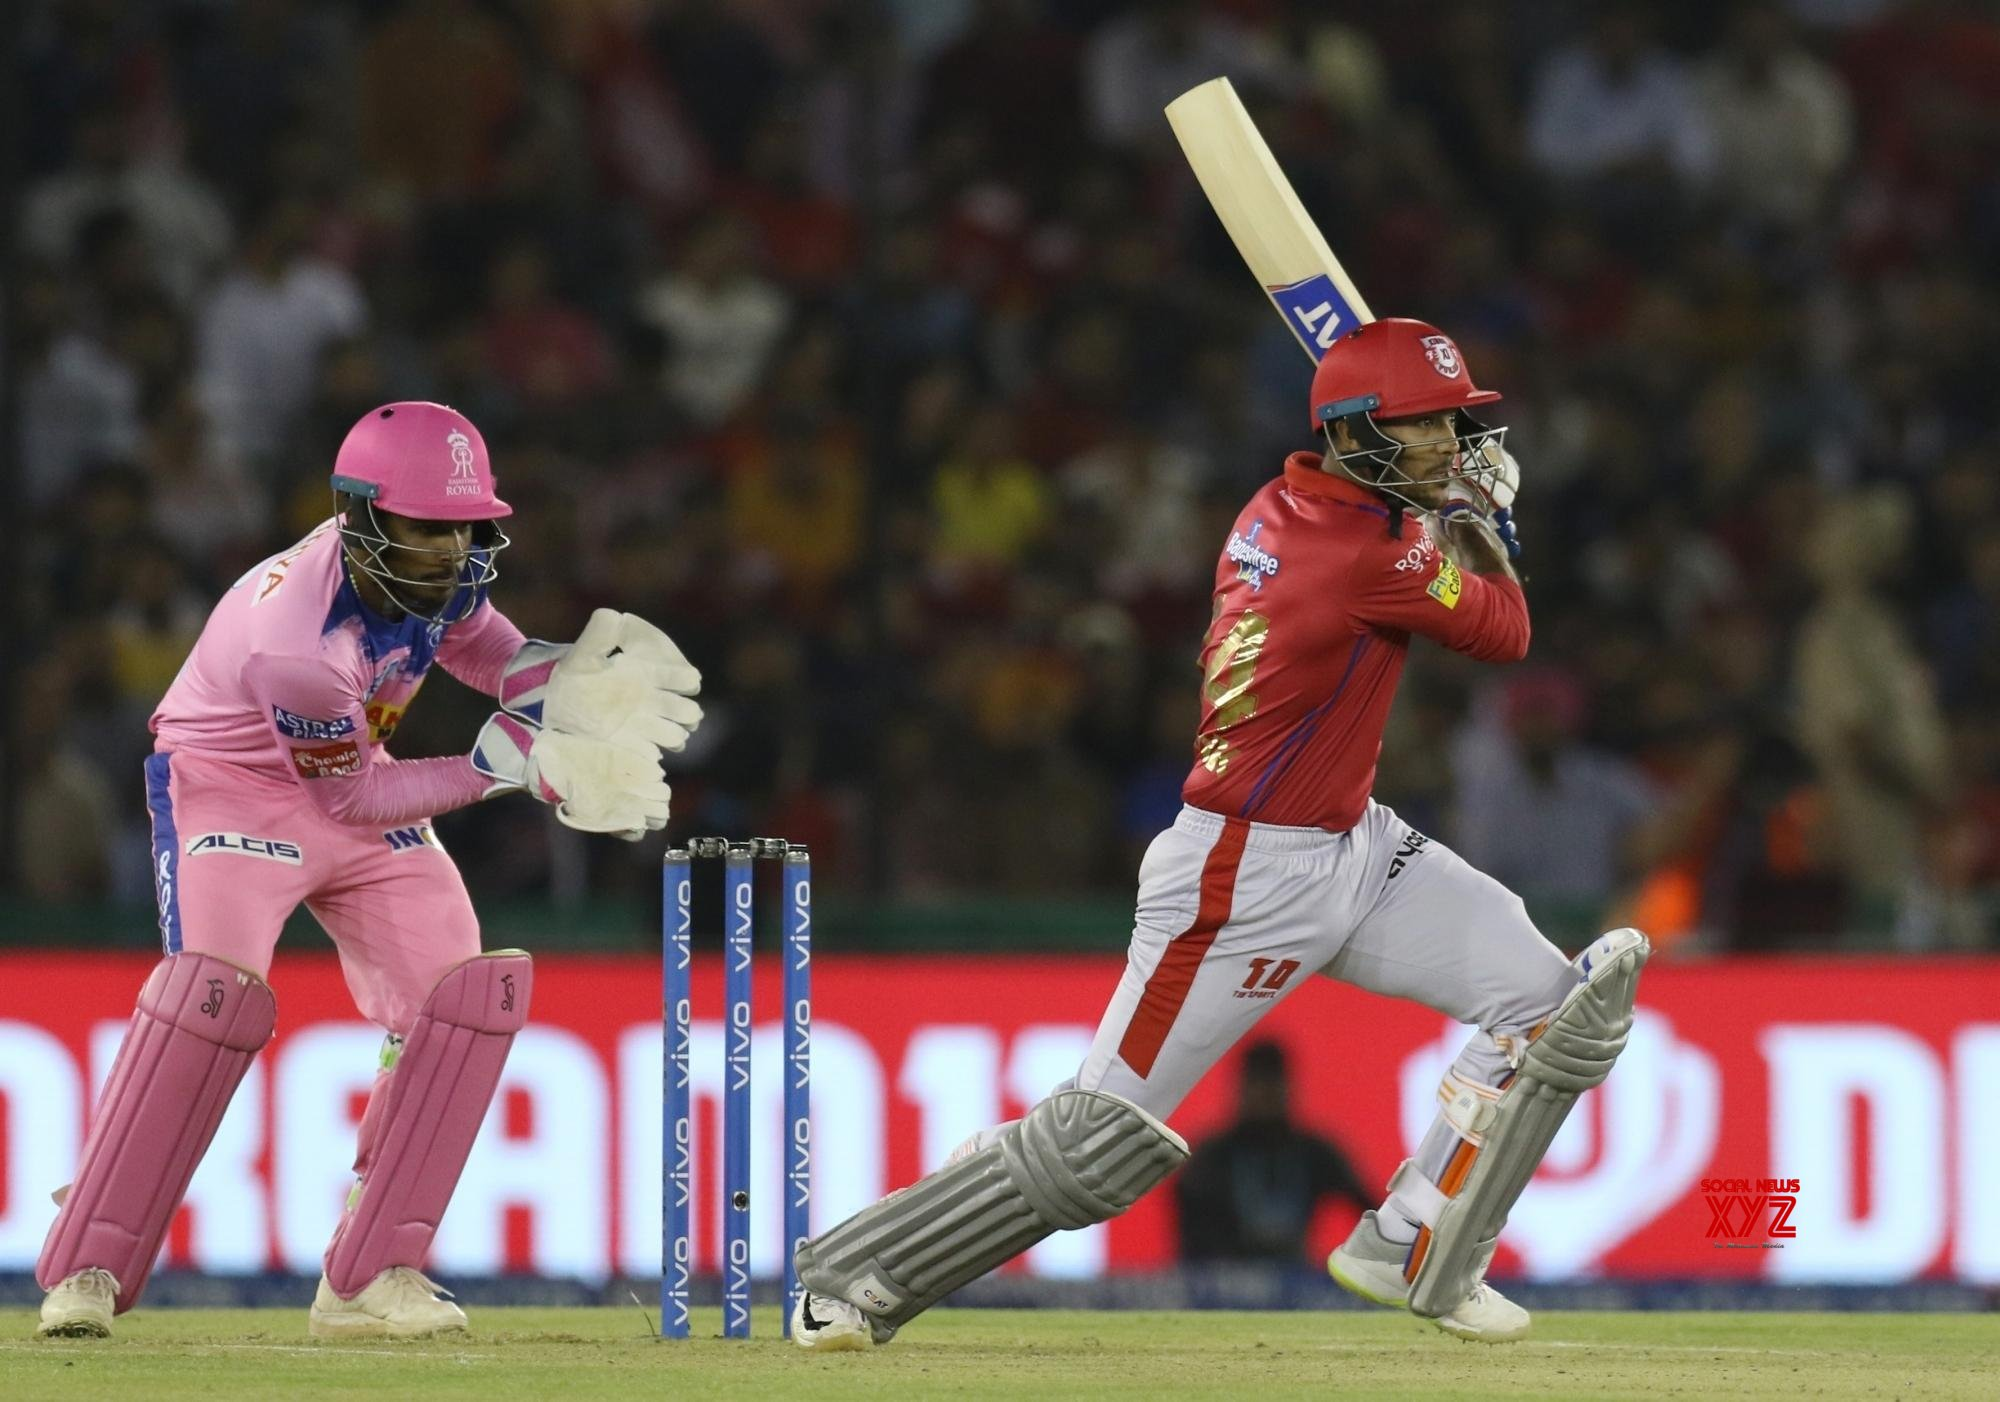 Mohali: IPL 2019 - Match 32 - Kings XI Punjab Vs Rajasthan Royals (Batch - 9) #Gallery